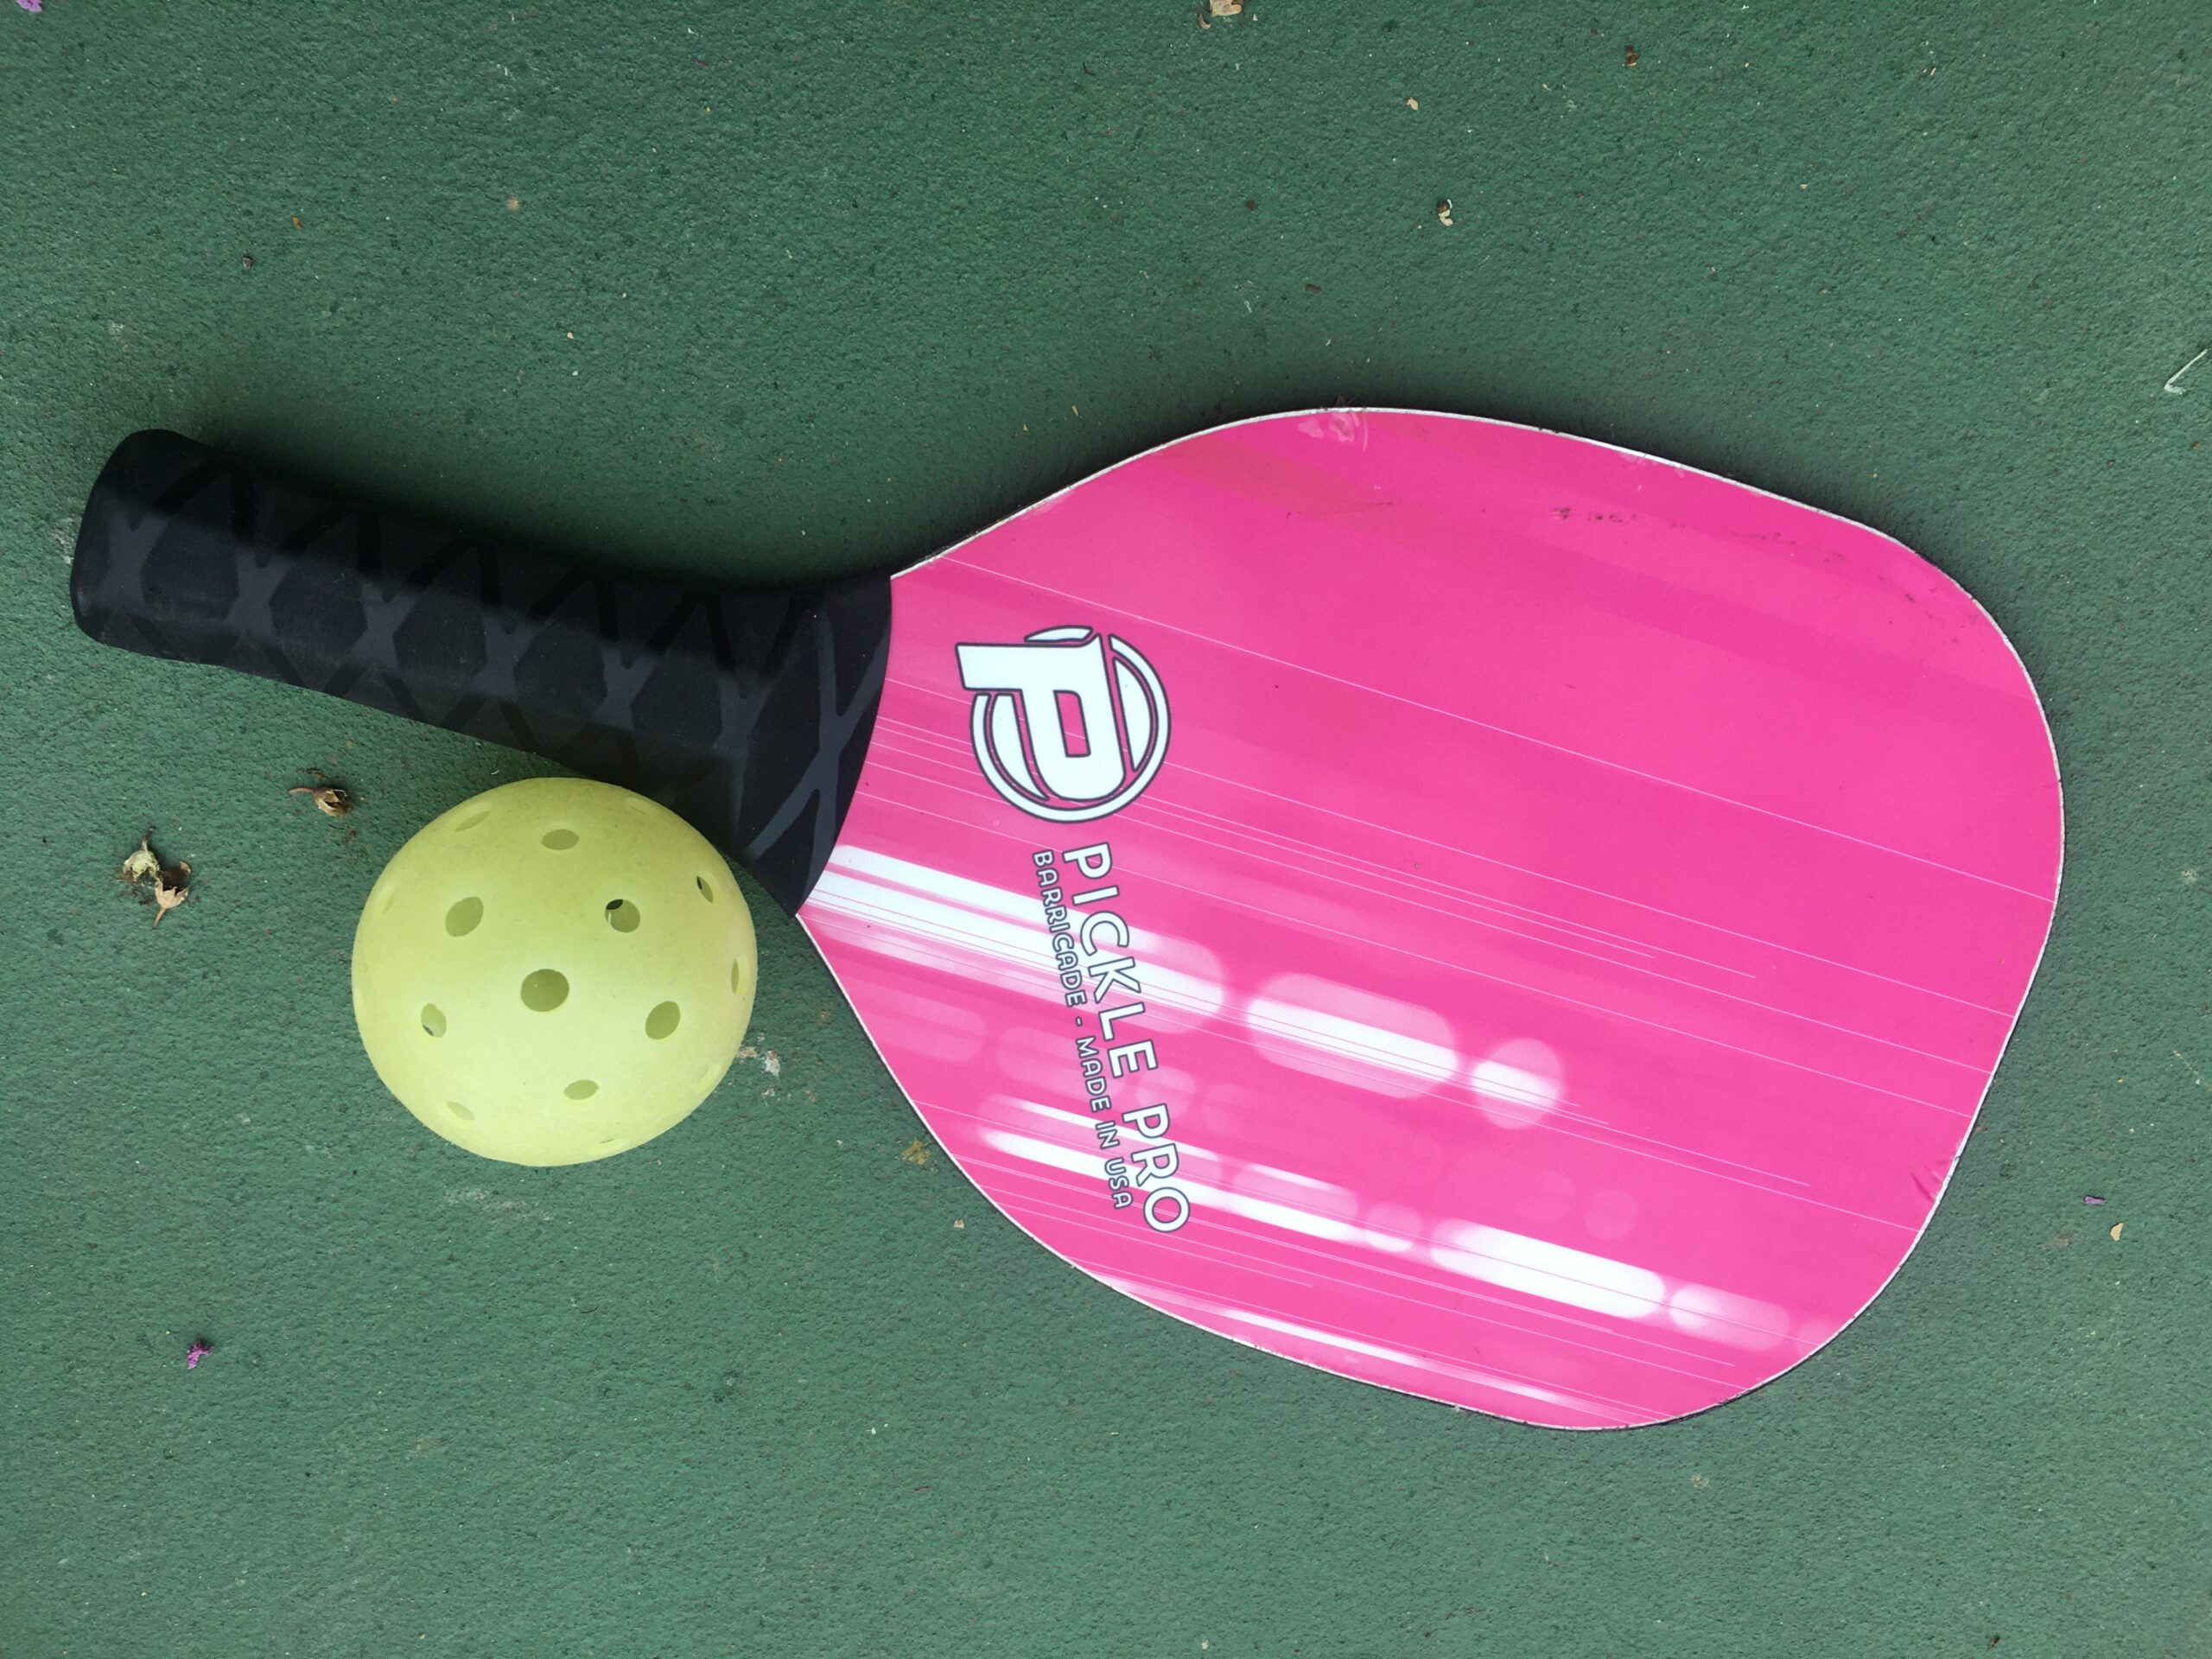 pickleball racket laying the ground